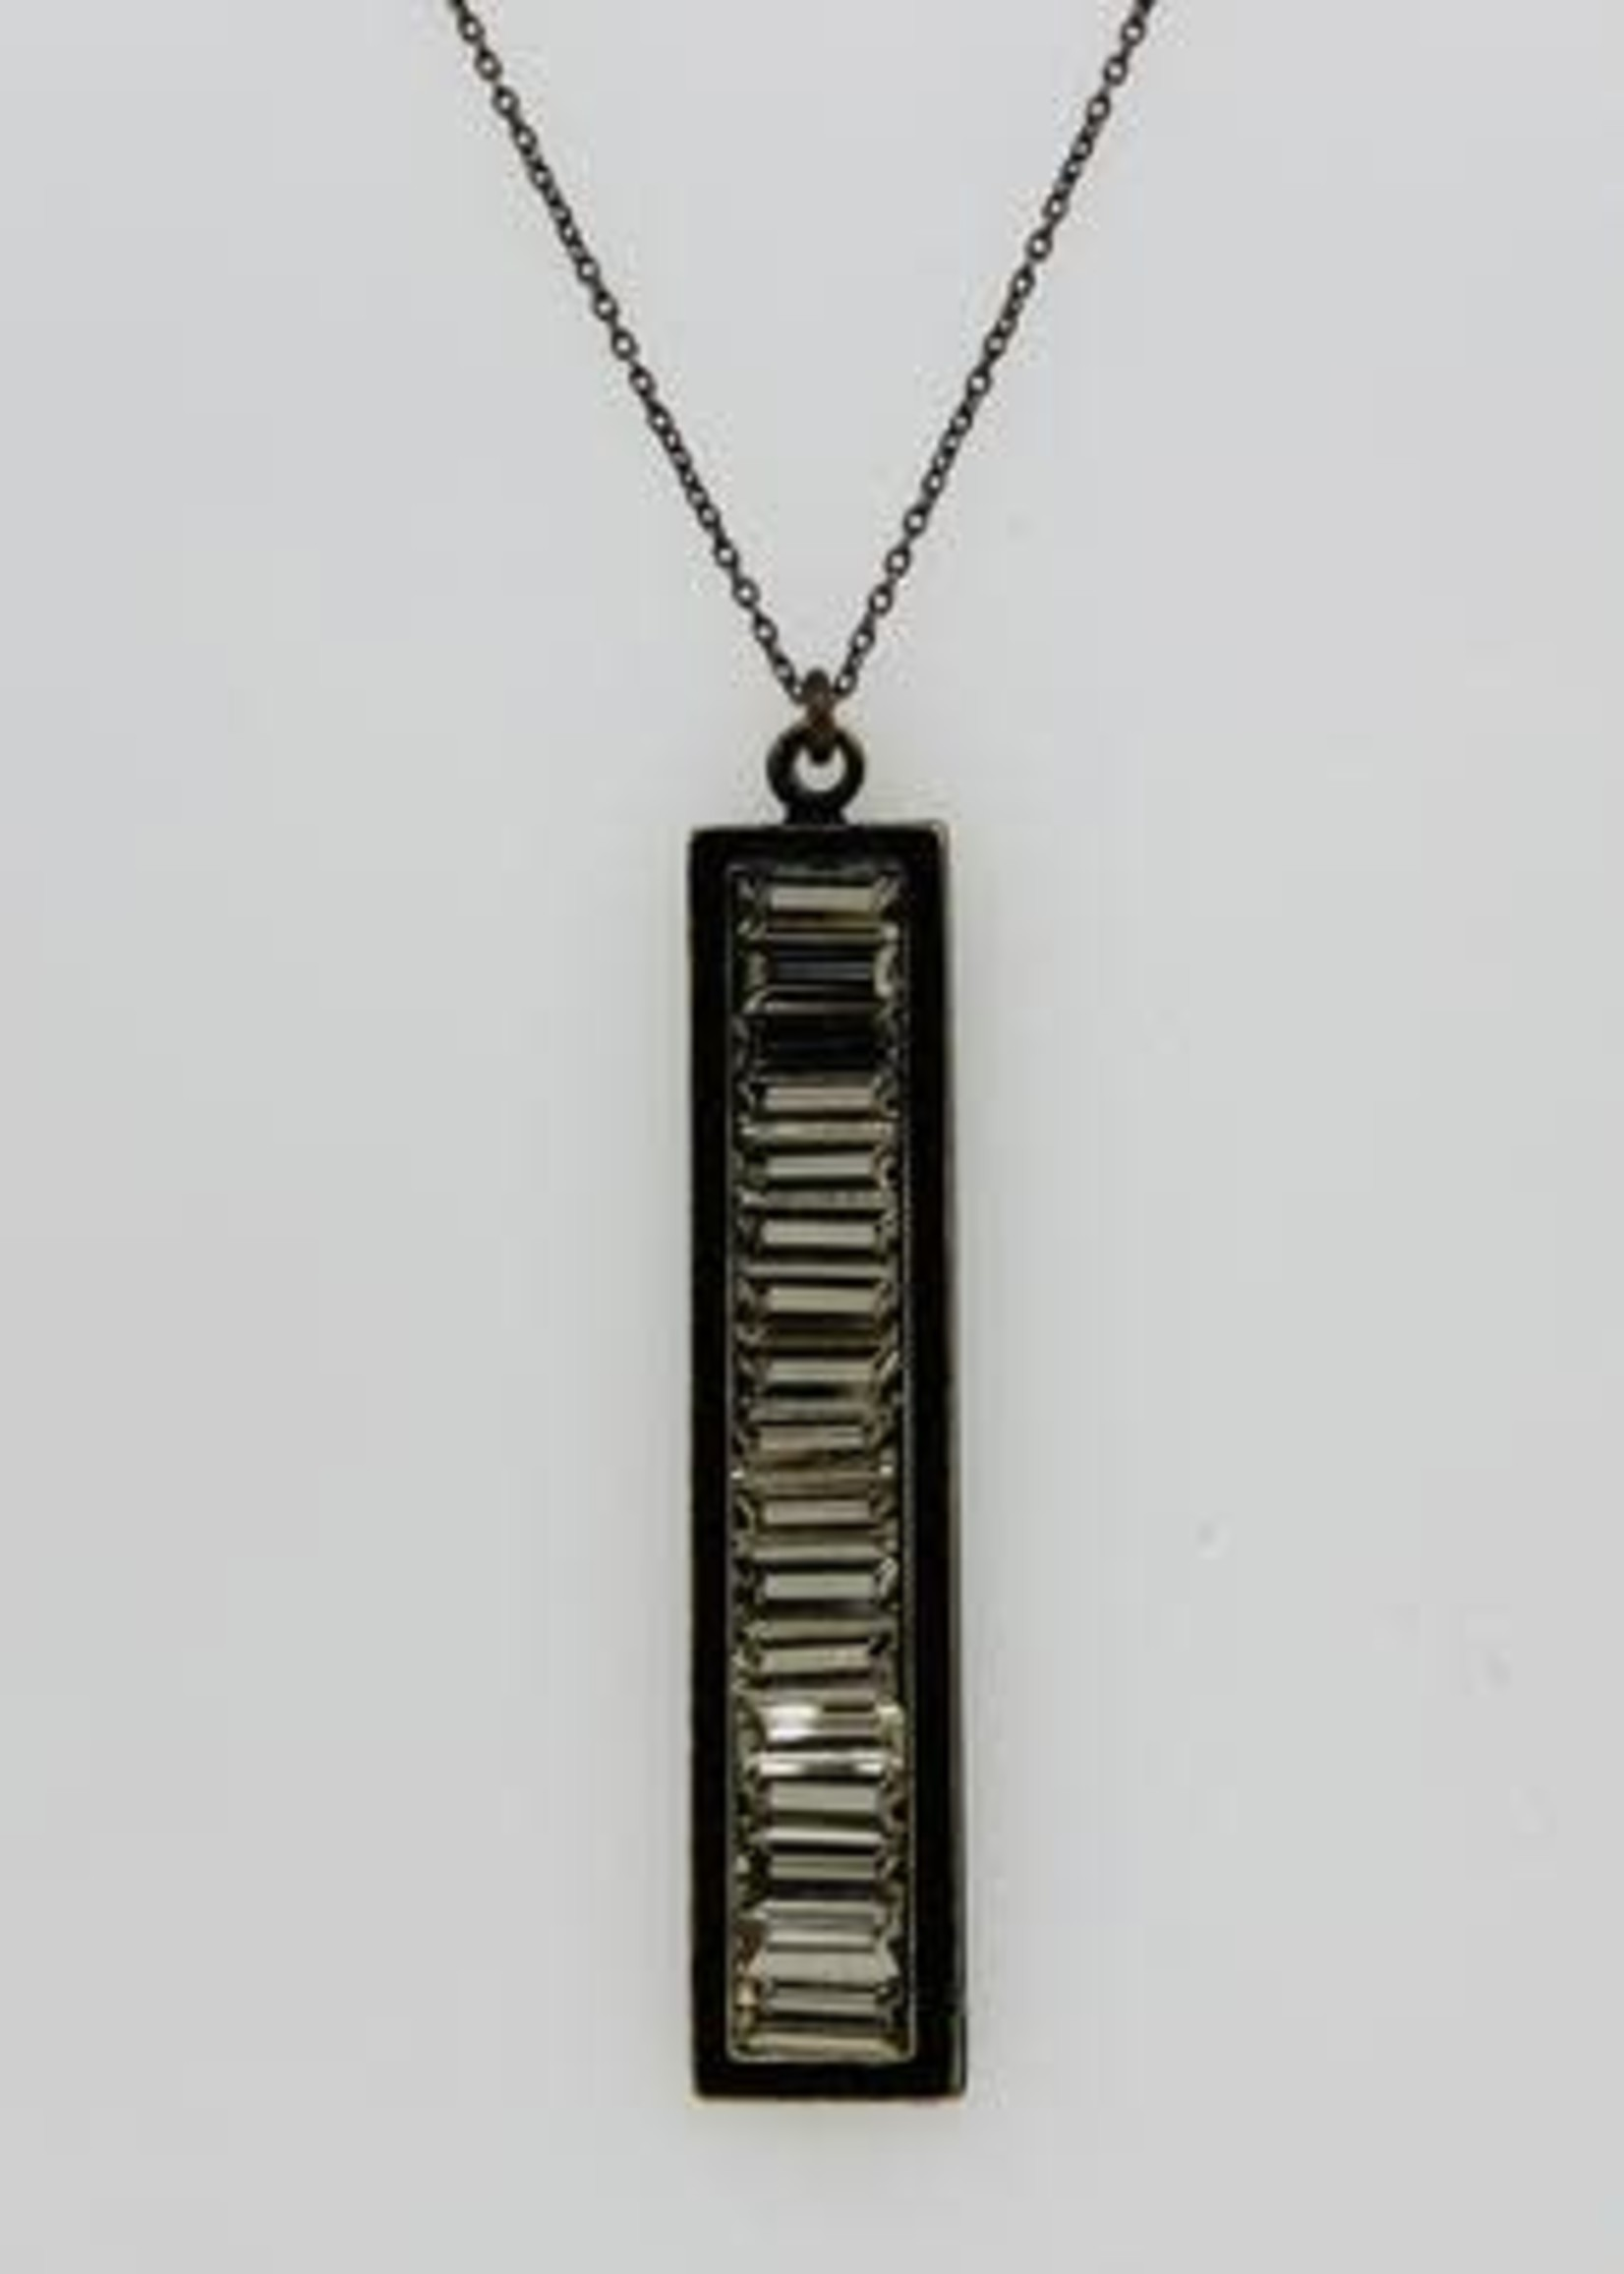 Rebel Designs Rebel - Rectangular Baguette Necklace (2088)